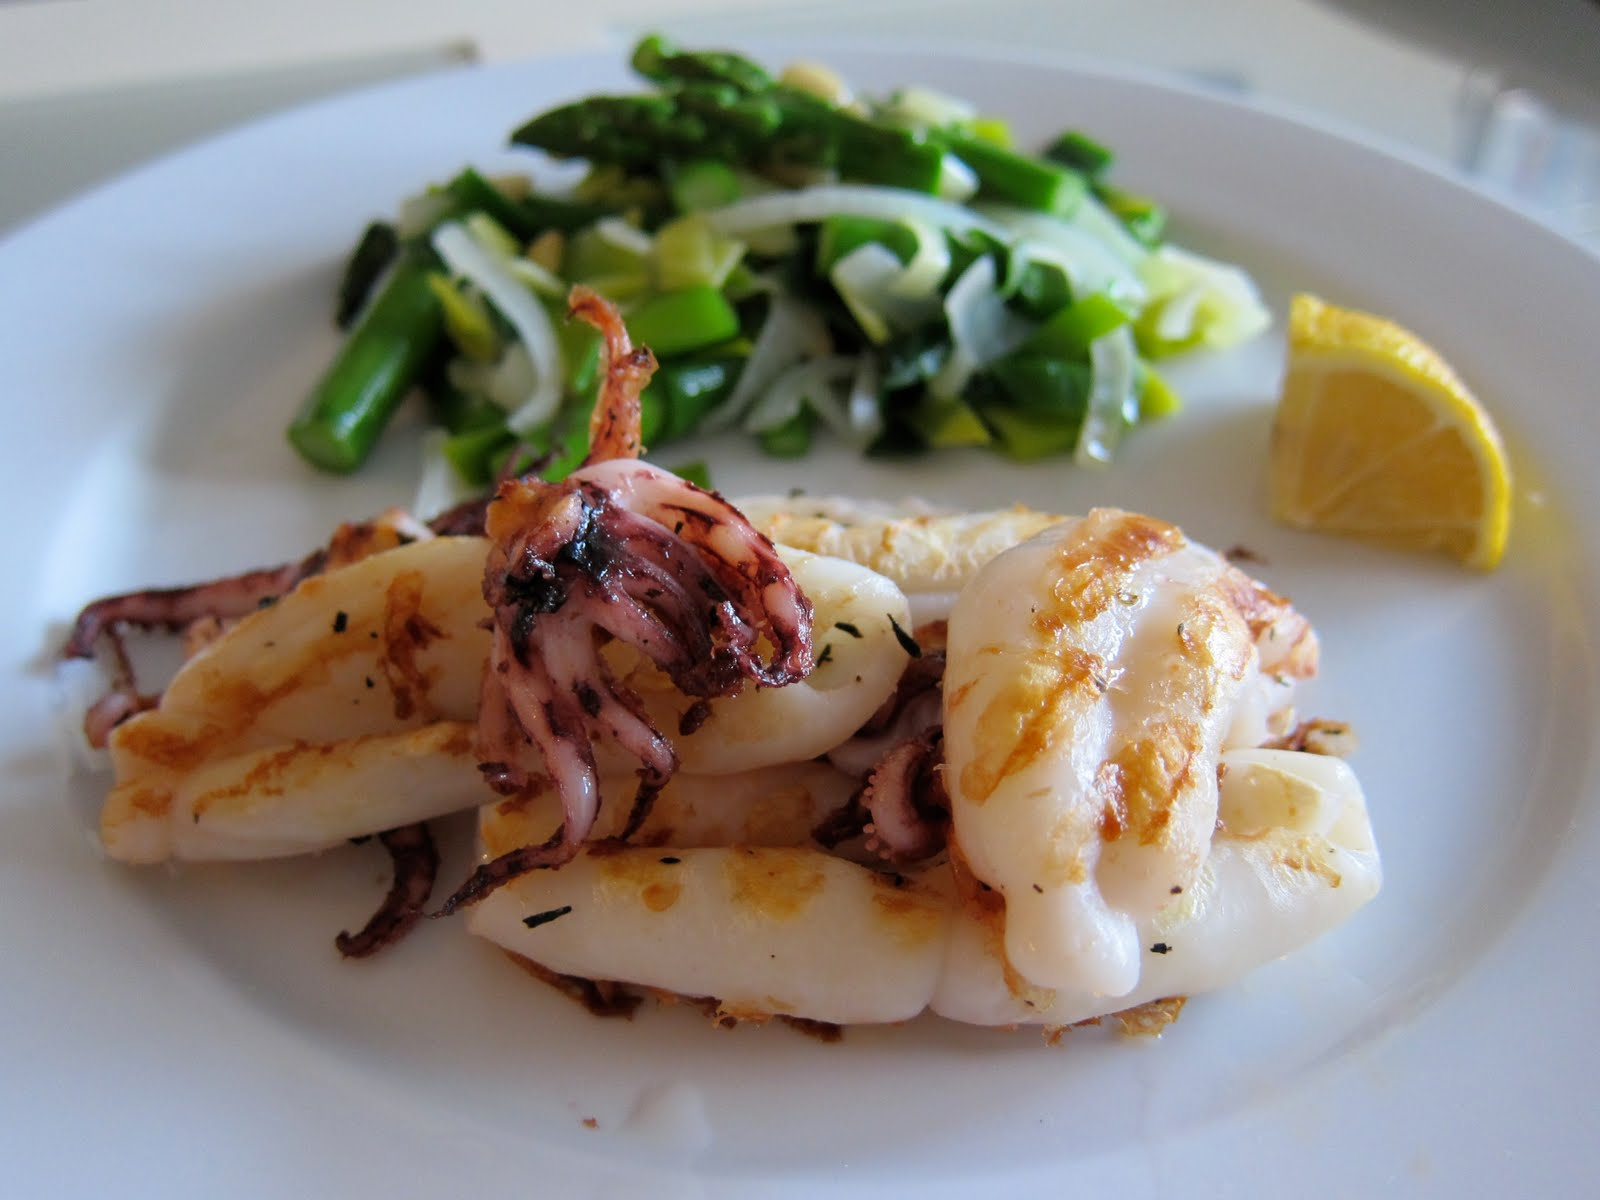 kisskiss angela @ Minneapolis: April showers bring Grilled Calamari